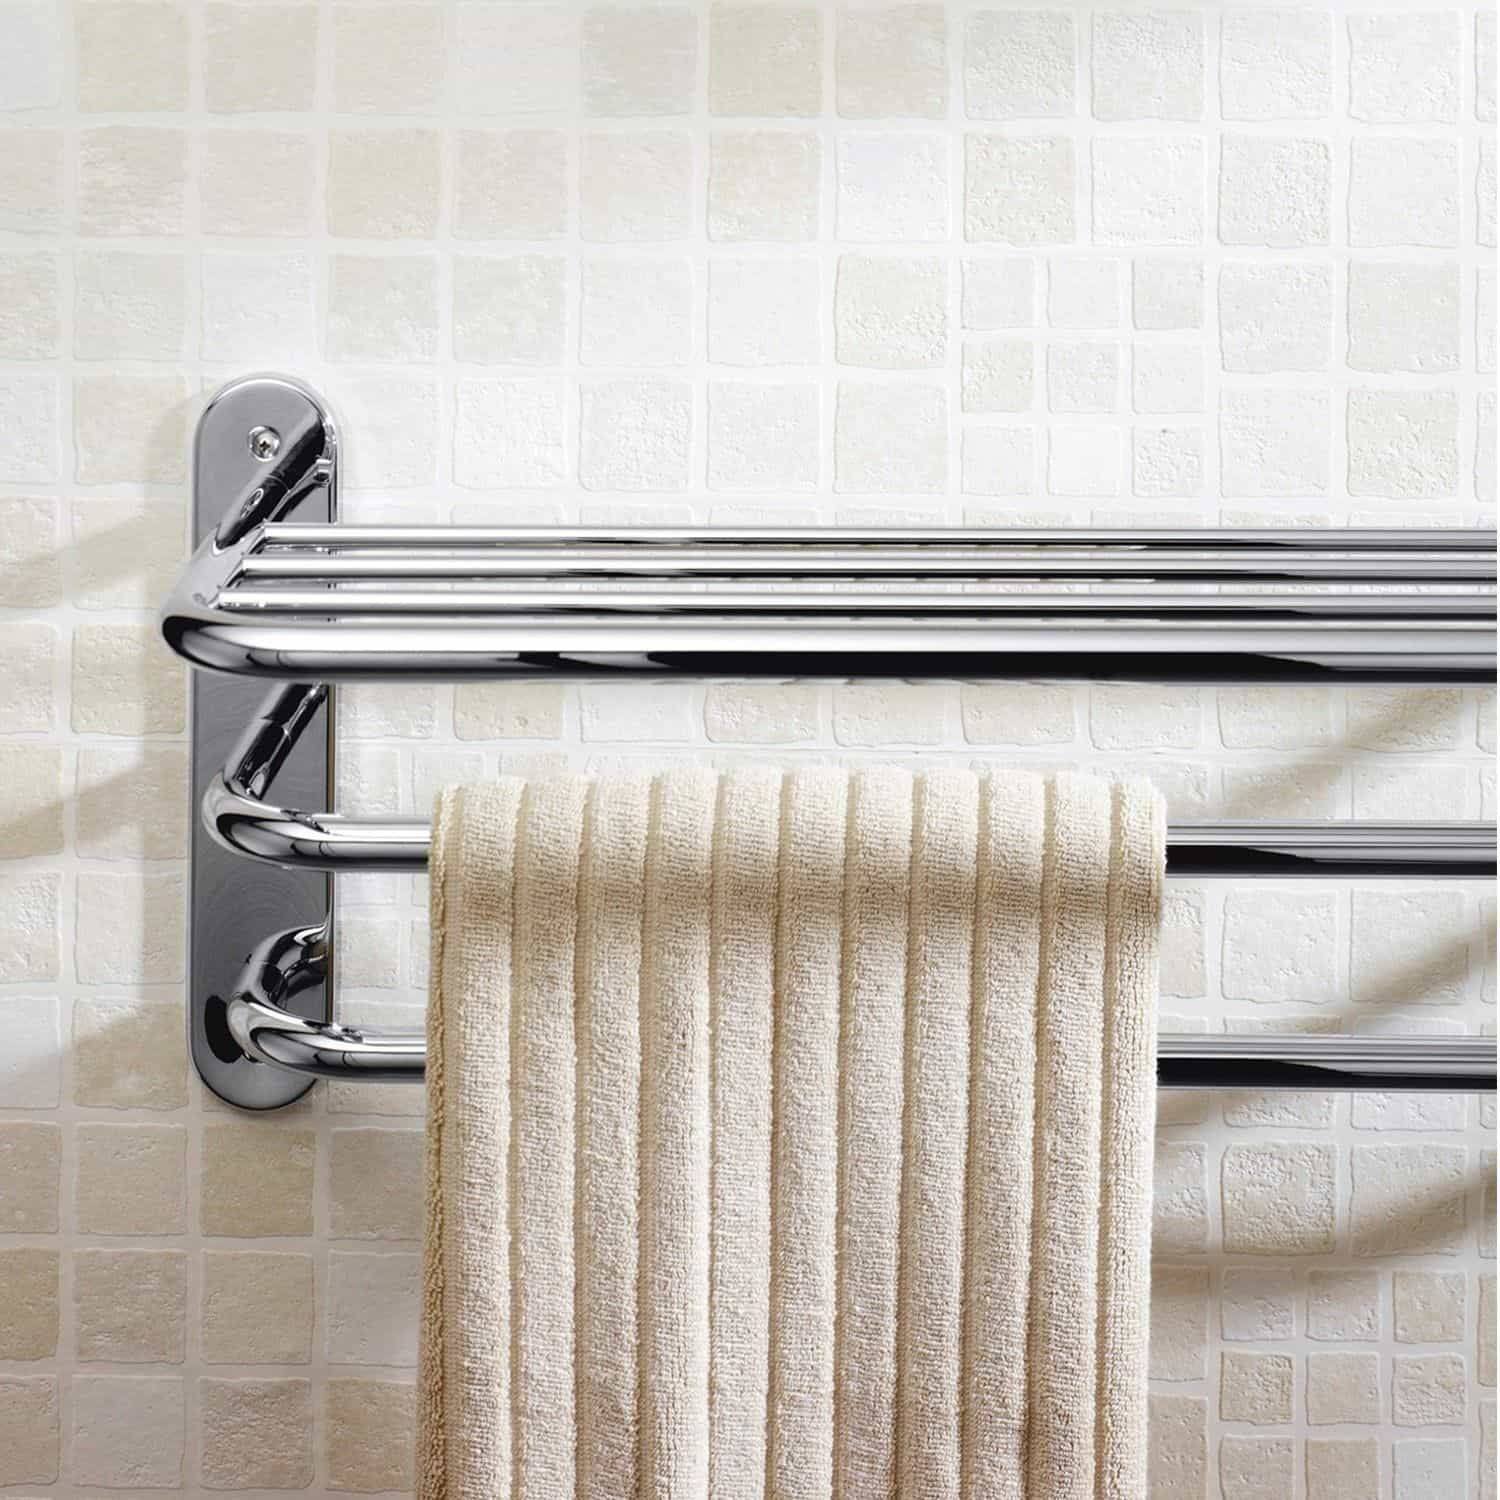 Standard Height Of A Towel Rack In Your Bathroom Towel Rack Bathroom Towel Rack Bathroom Towel Bar